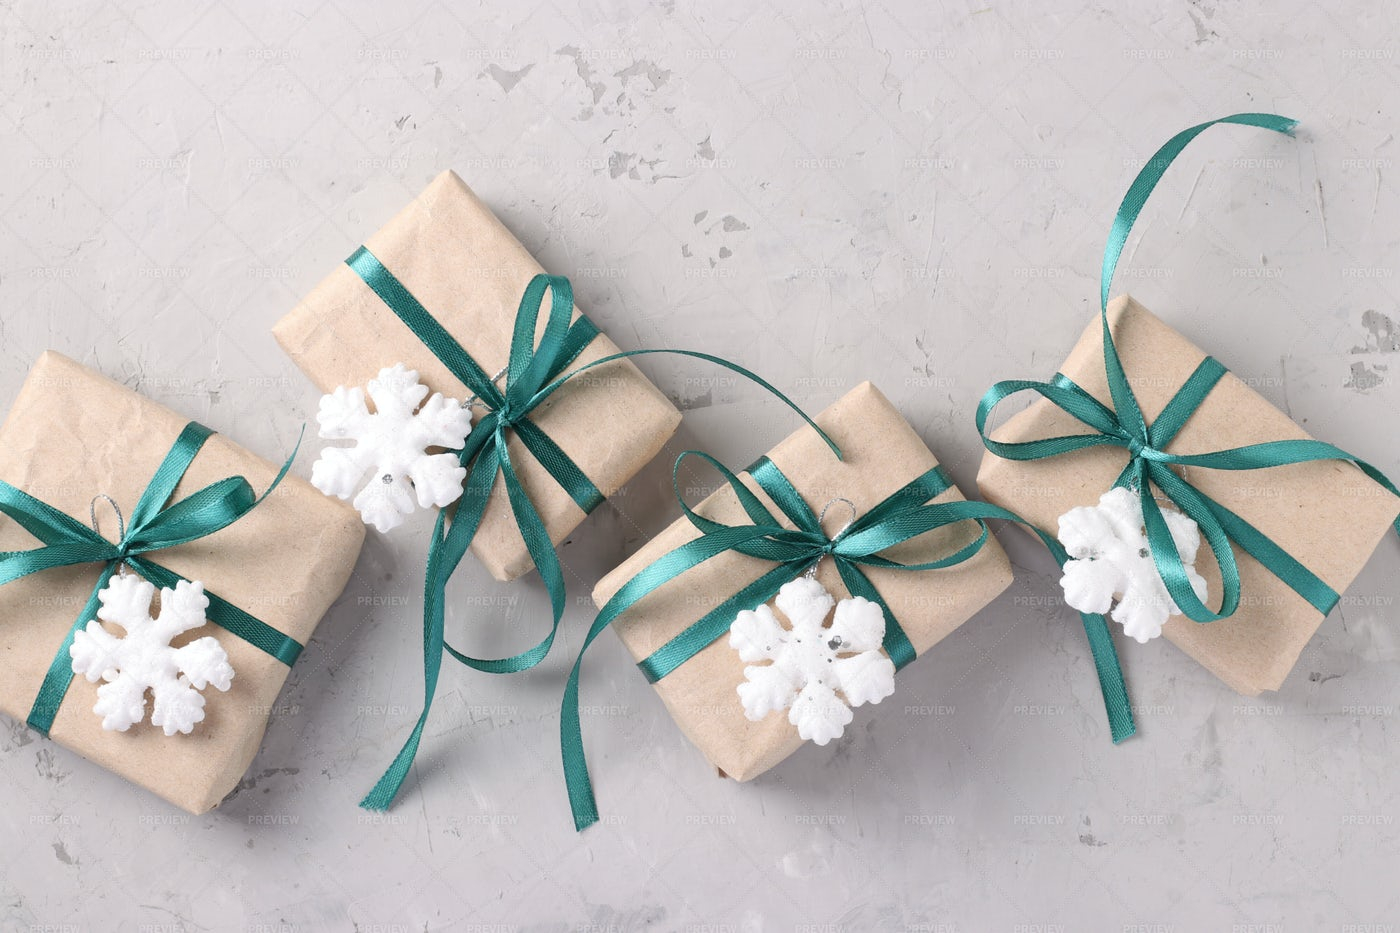 Christmas Gifts In Kraft Paper: Stock Photos